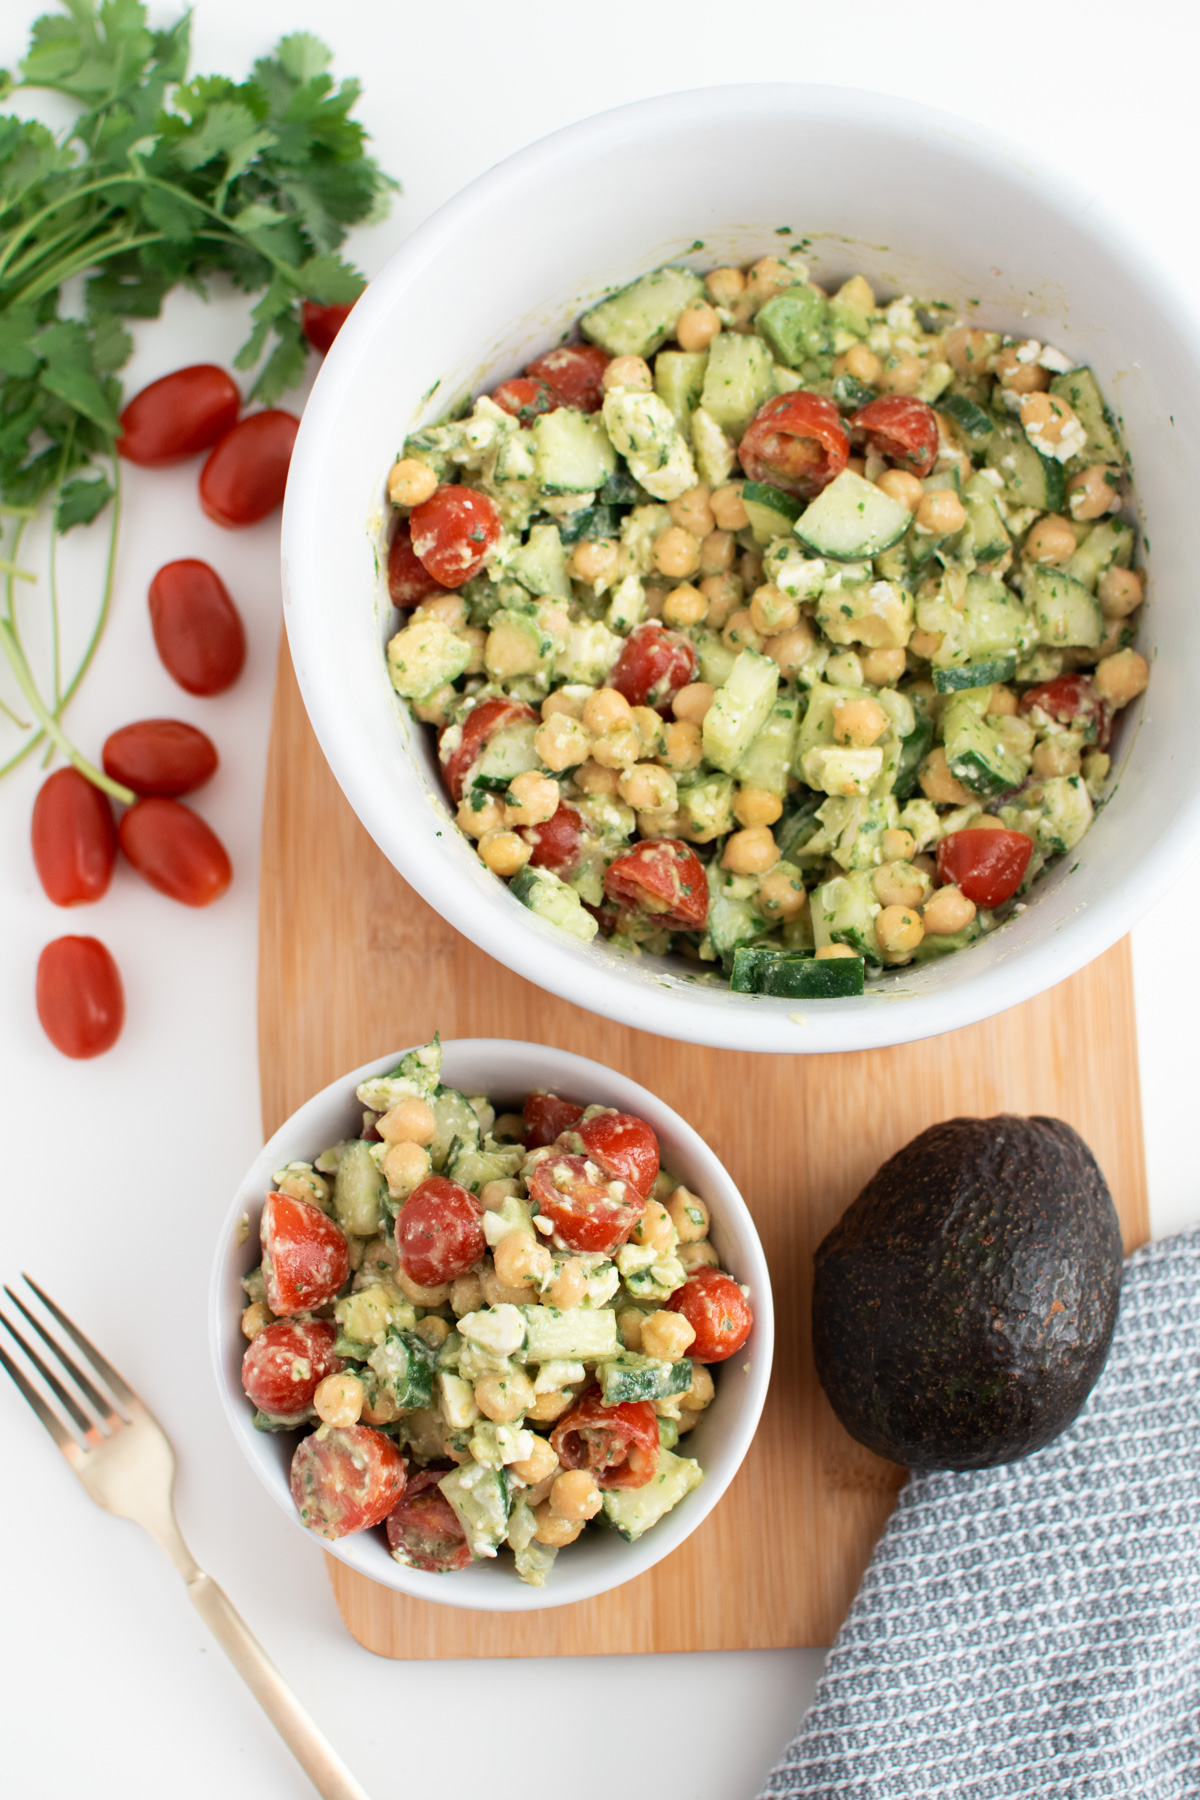 Chickpea salad with cilantro and feta in white bowls on wooden cutting board.